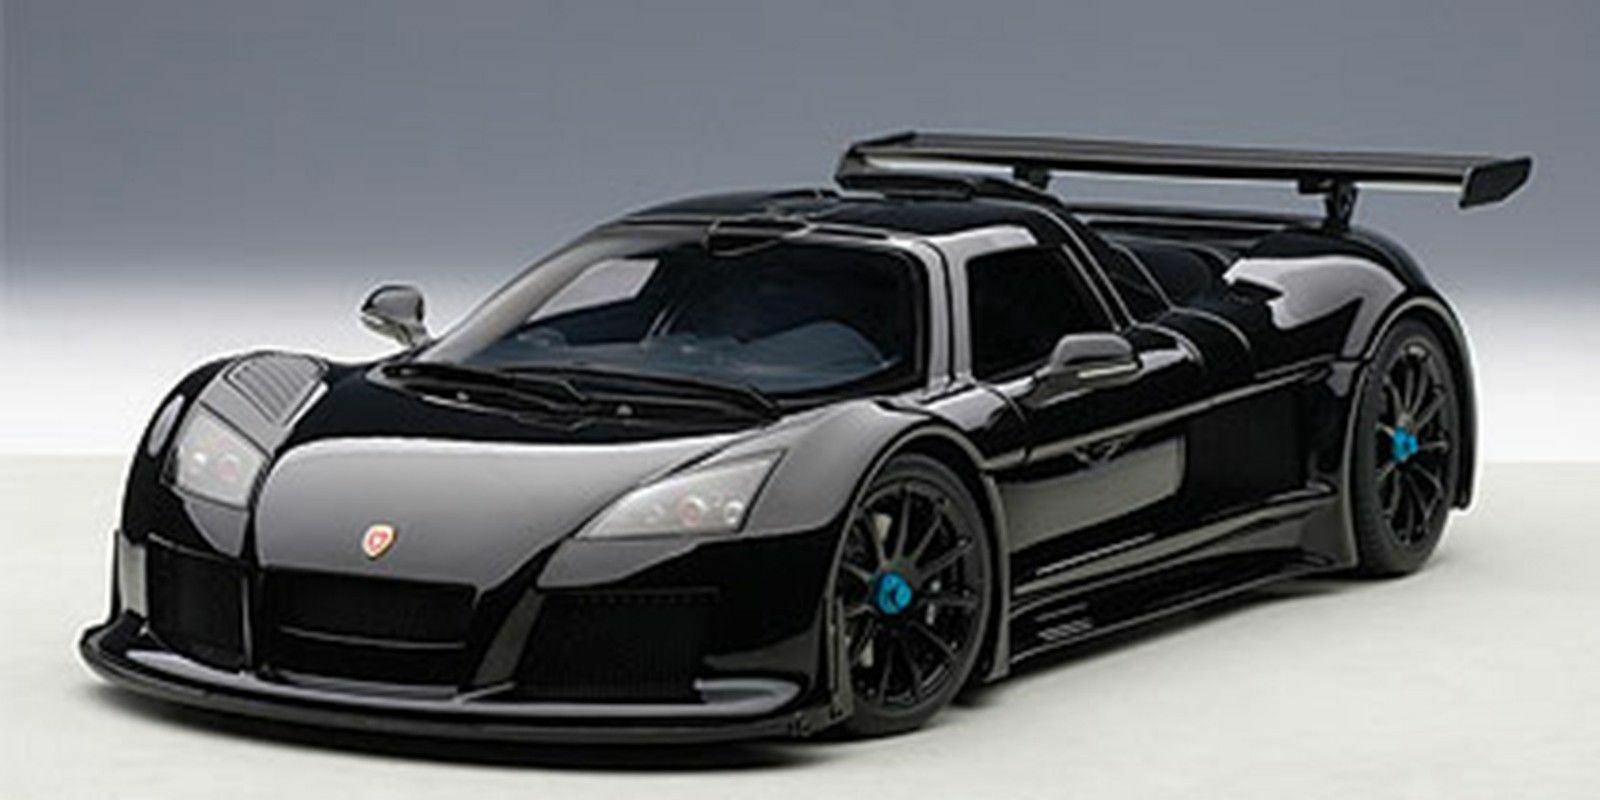 AUTOART GUMPERT Apollo Noir Mat Couleur 1 18  Nouvelle Version